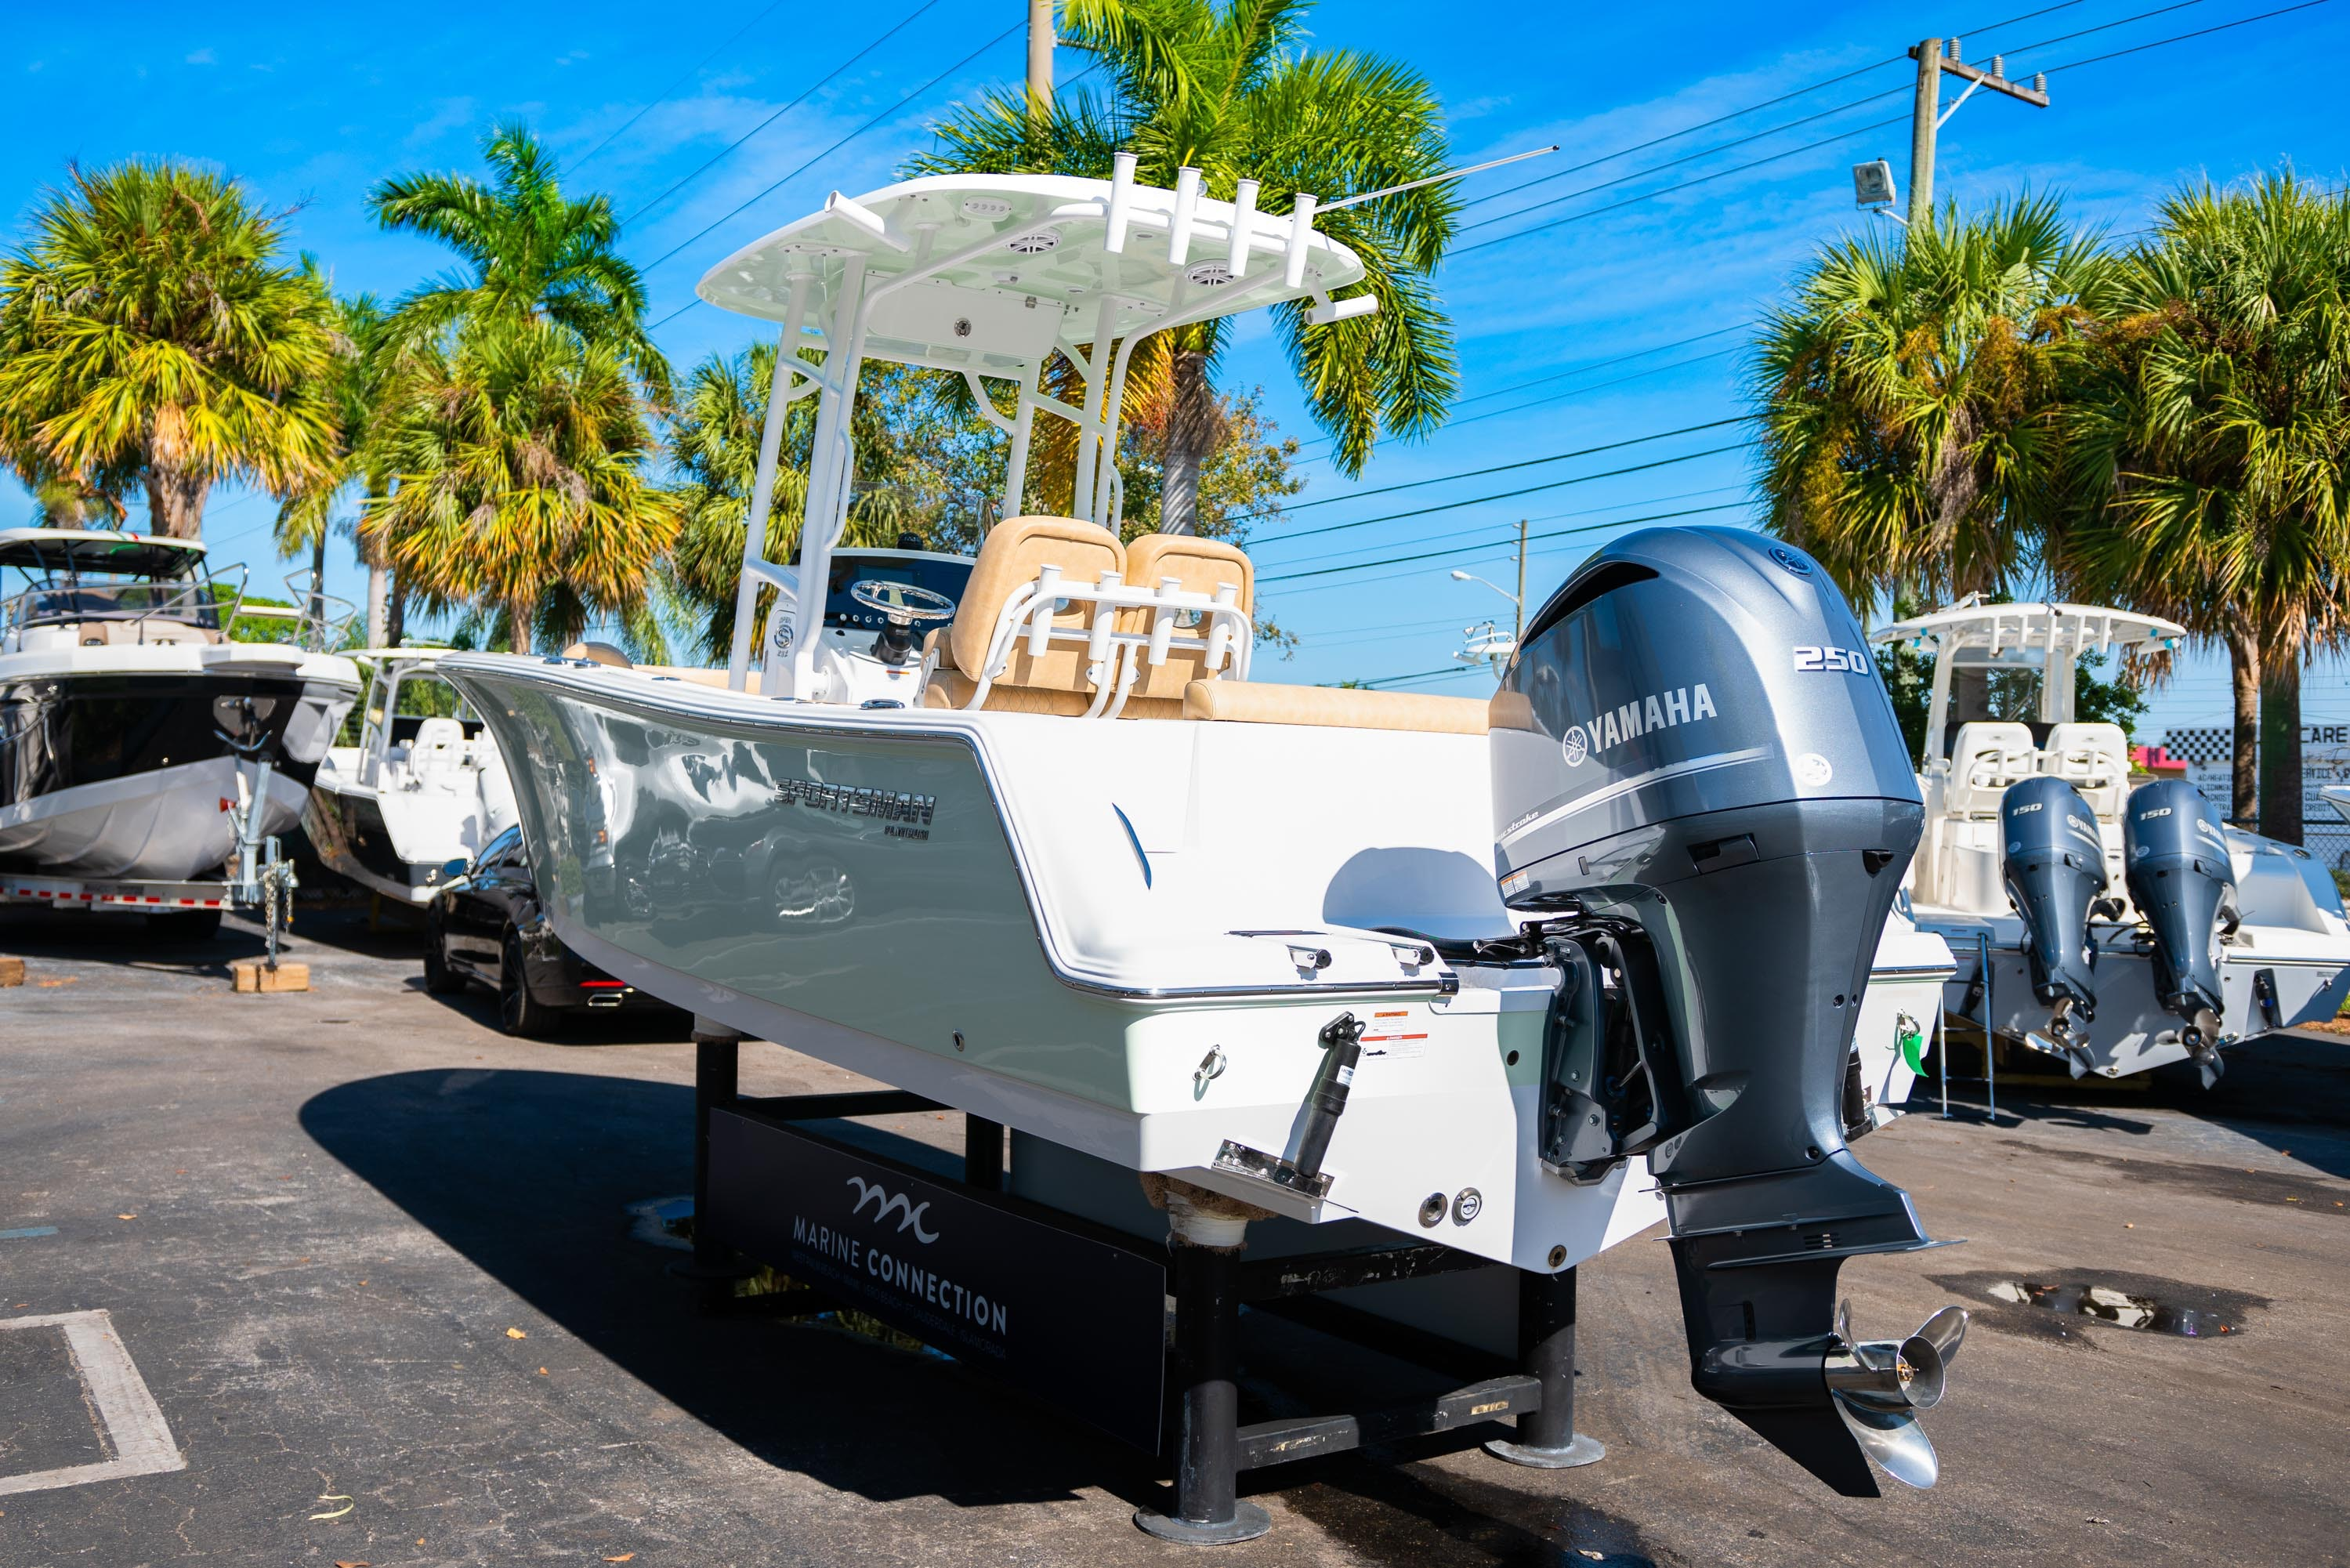 Thumbnail 5 for New 2020 Sportsman Open 232 Center Console boat for sale in West Palm Beach, FL